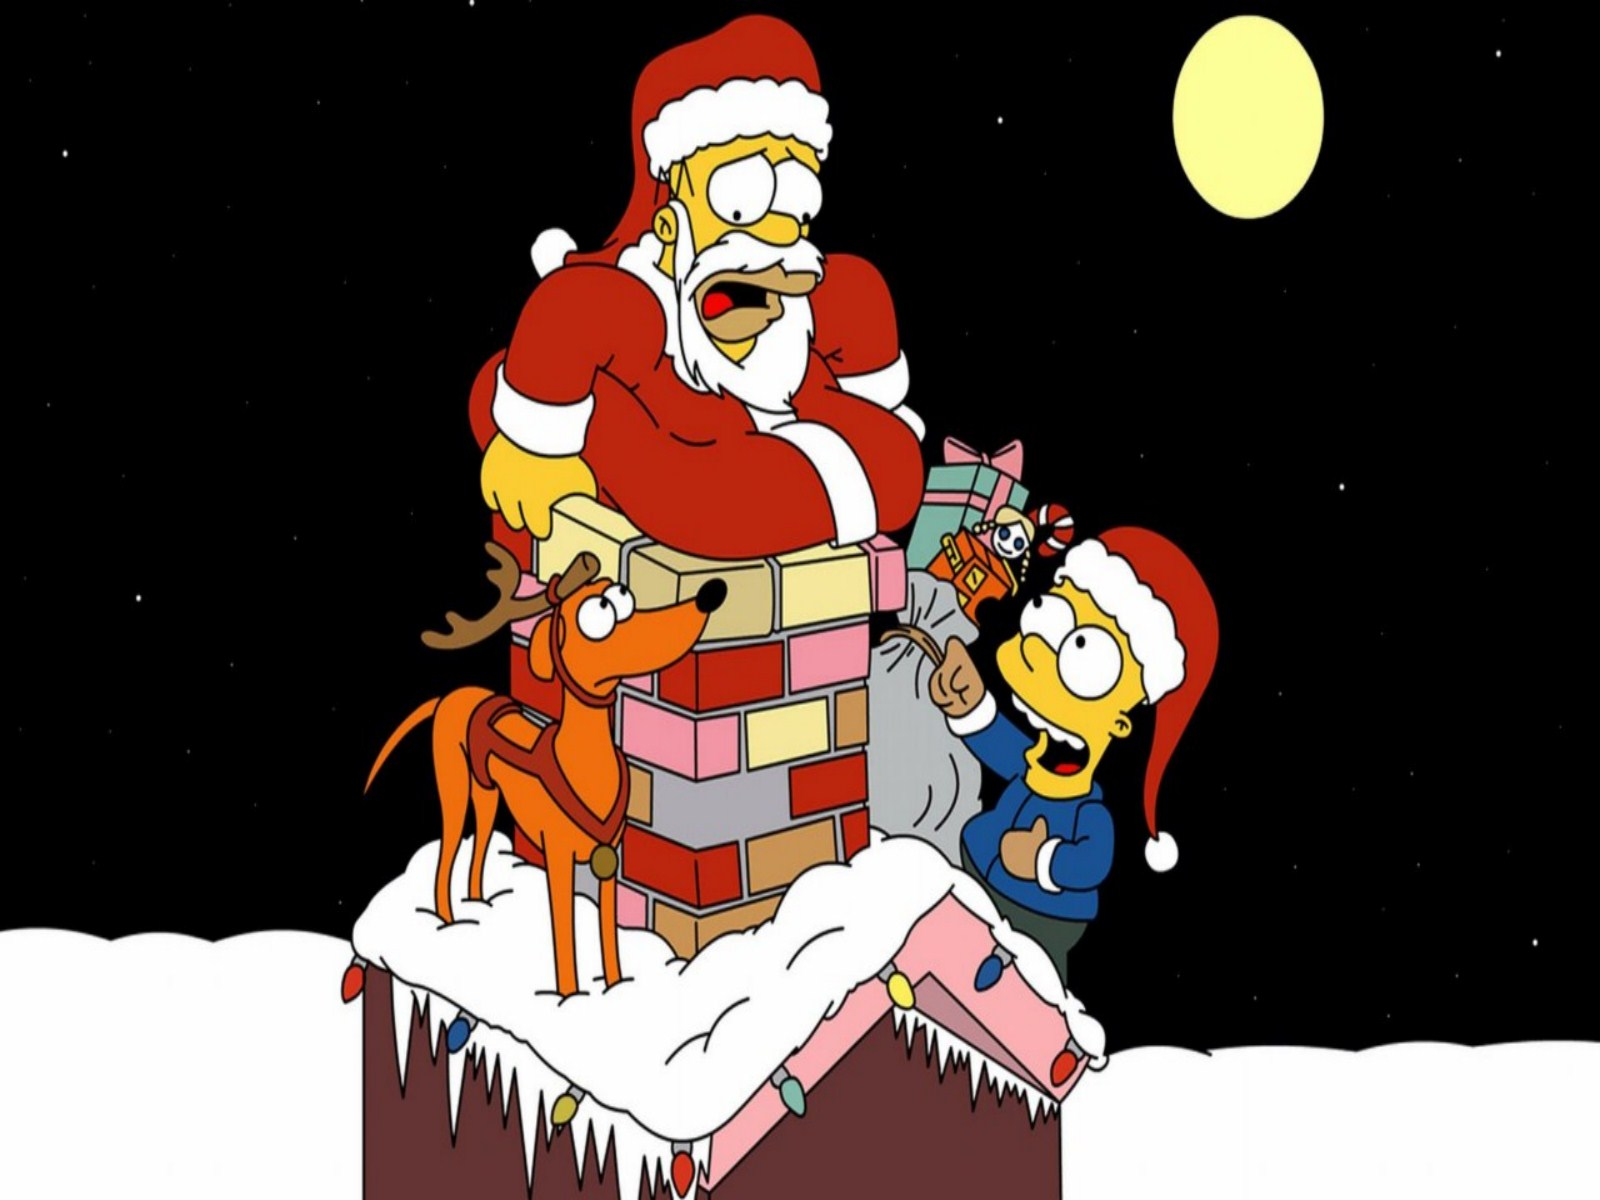 Simpsons Christmas Background Wallpaper - 1600x1200 - 177891